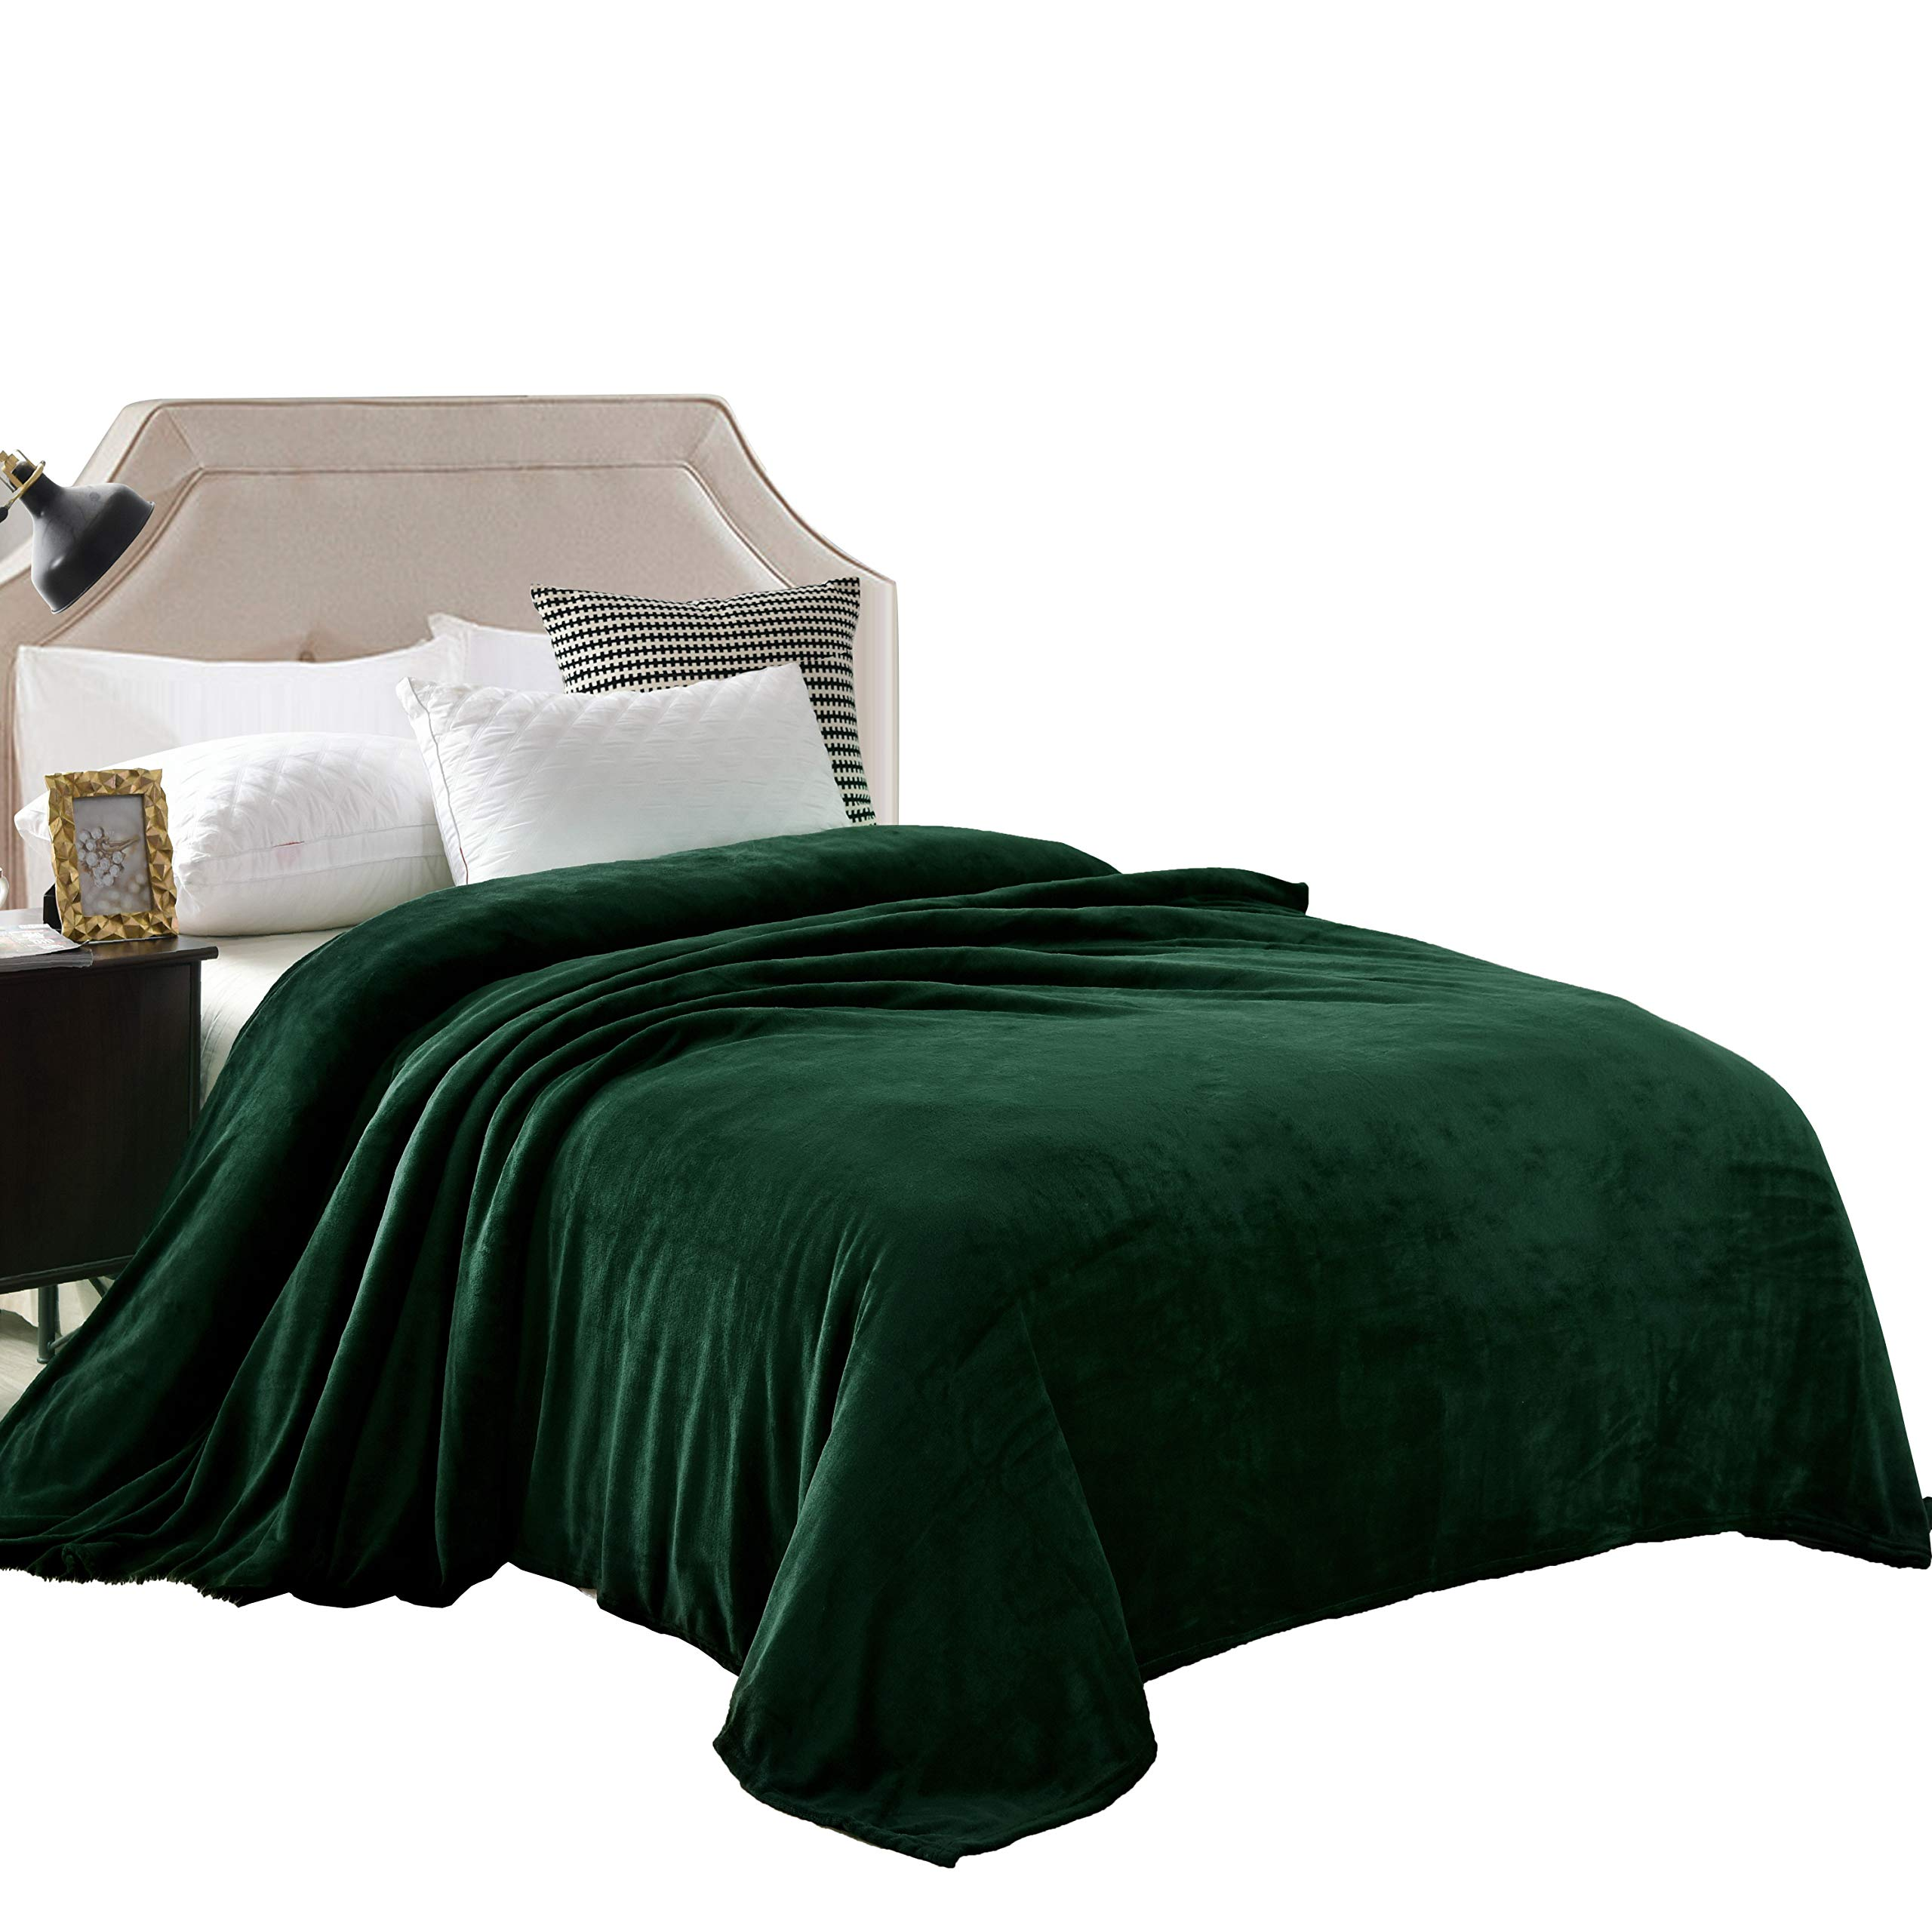 """Exclusivo Mezcla Luxury King Size Flannel Velvet Plush Solid Bed Blanket as Bedspread/Coverlet/Bed Cover (90"""" x 104"""", Forest Green) - Soft, Lightweight, Warm and Cozy"""